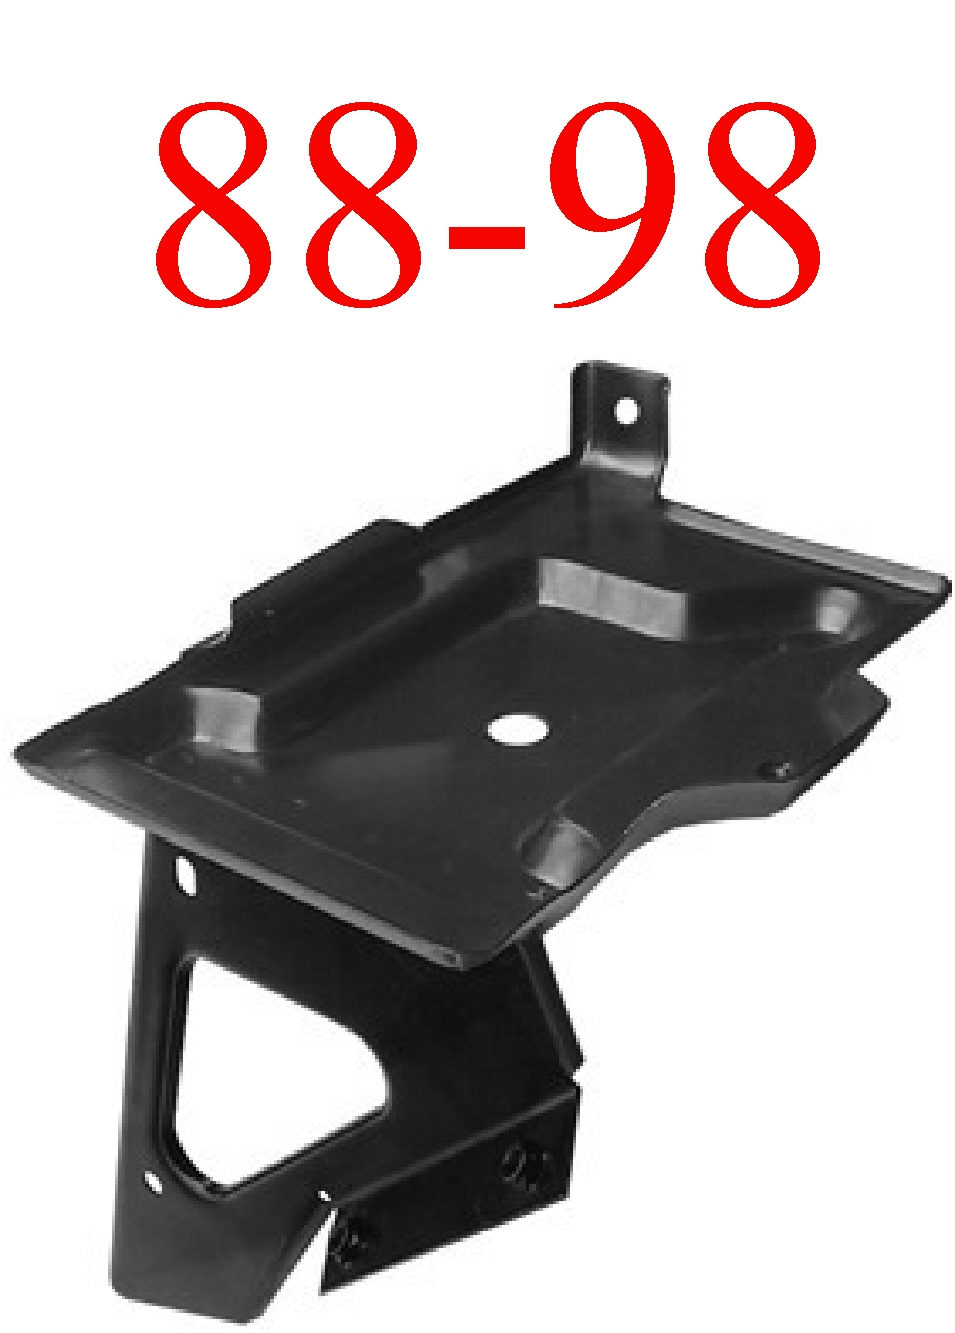 88-98 Chevy Battery Tray With Support GMC Truck